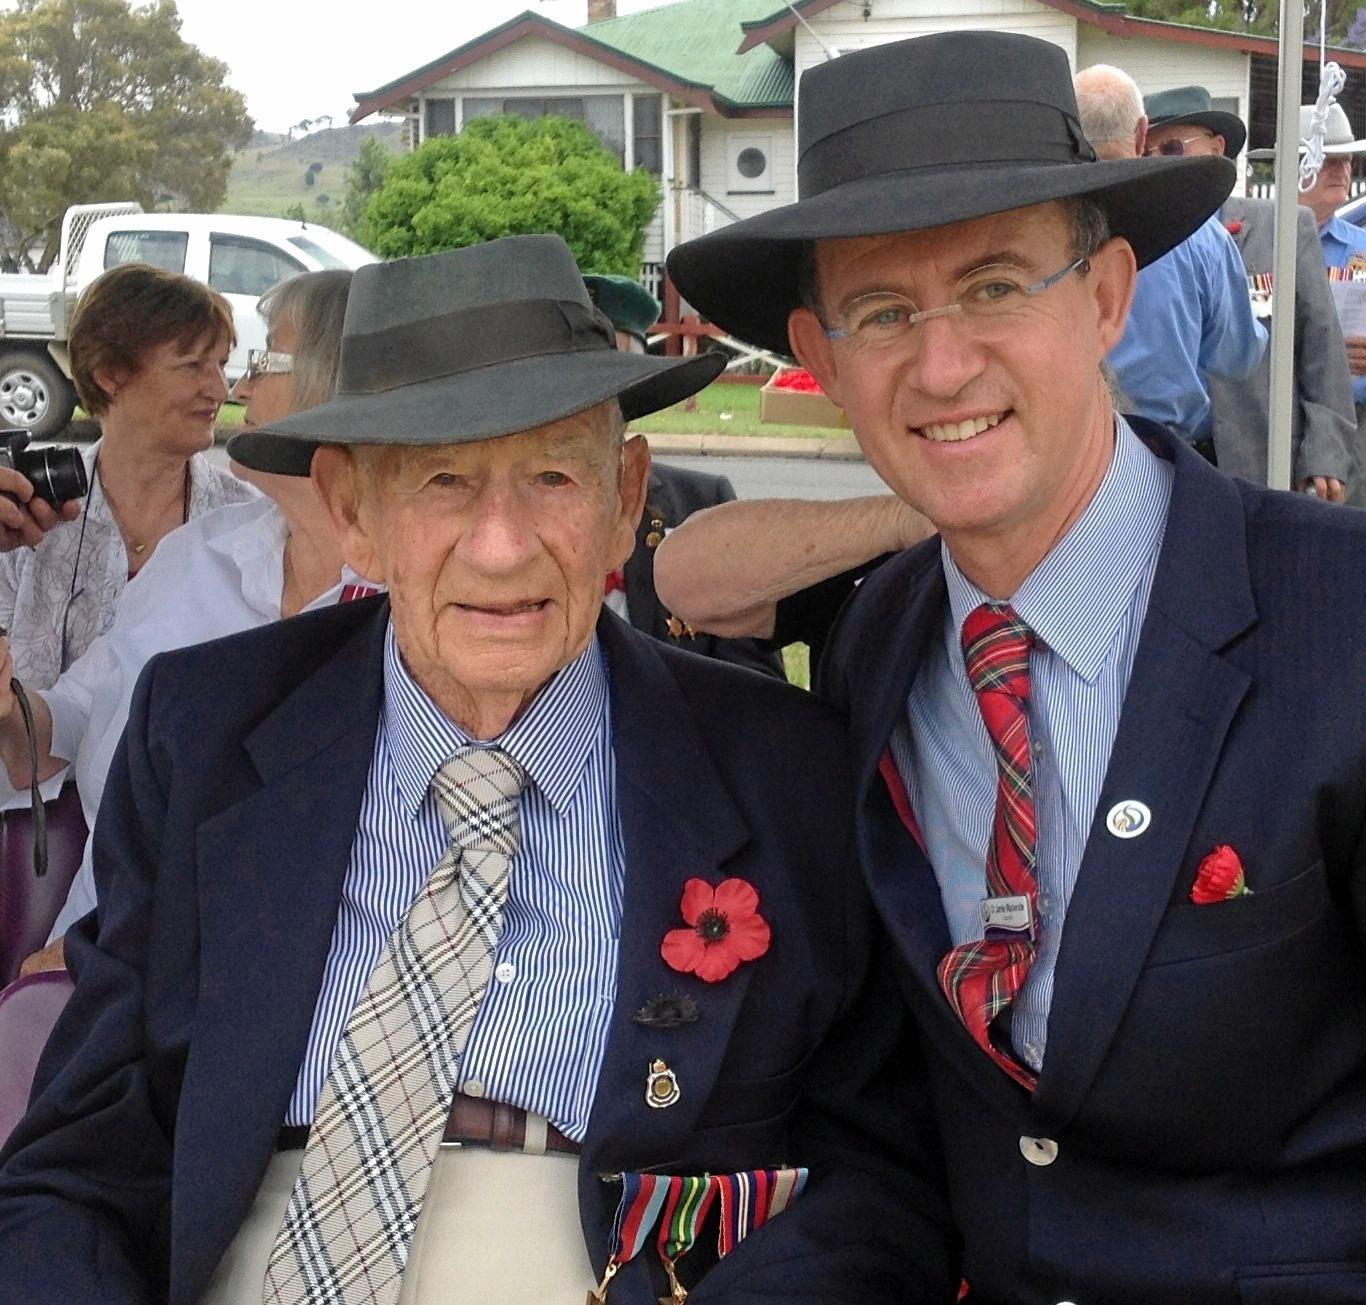 PROUD FAMILY: Jamie with his late father and World War II veteran Bruce Mackenzie at the Killarney Remembrance Day Service.